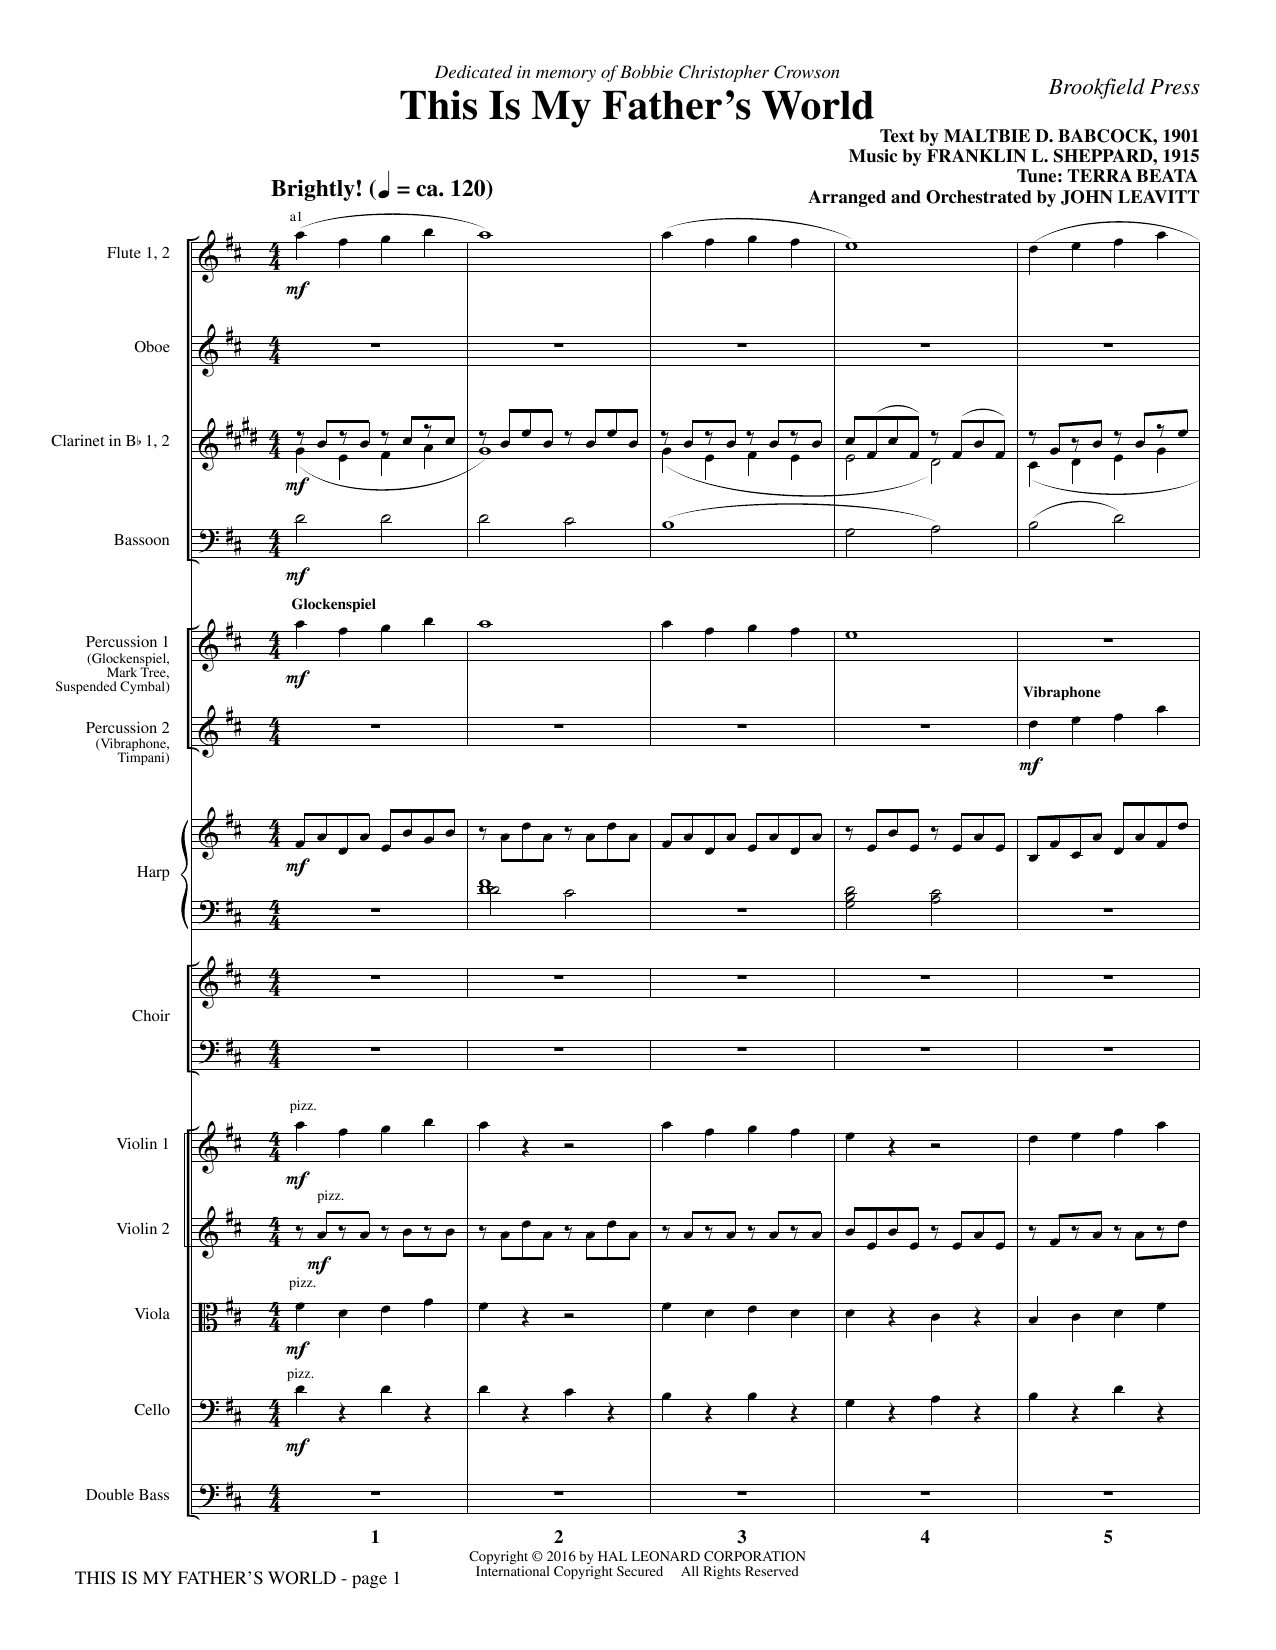 This Is My Father's World (COMPLETE) sheet music for orchestra/band by John Leavitt, Franklin L. Sheppard and Maltbie D. Babcock. Score Image Preview.